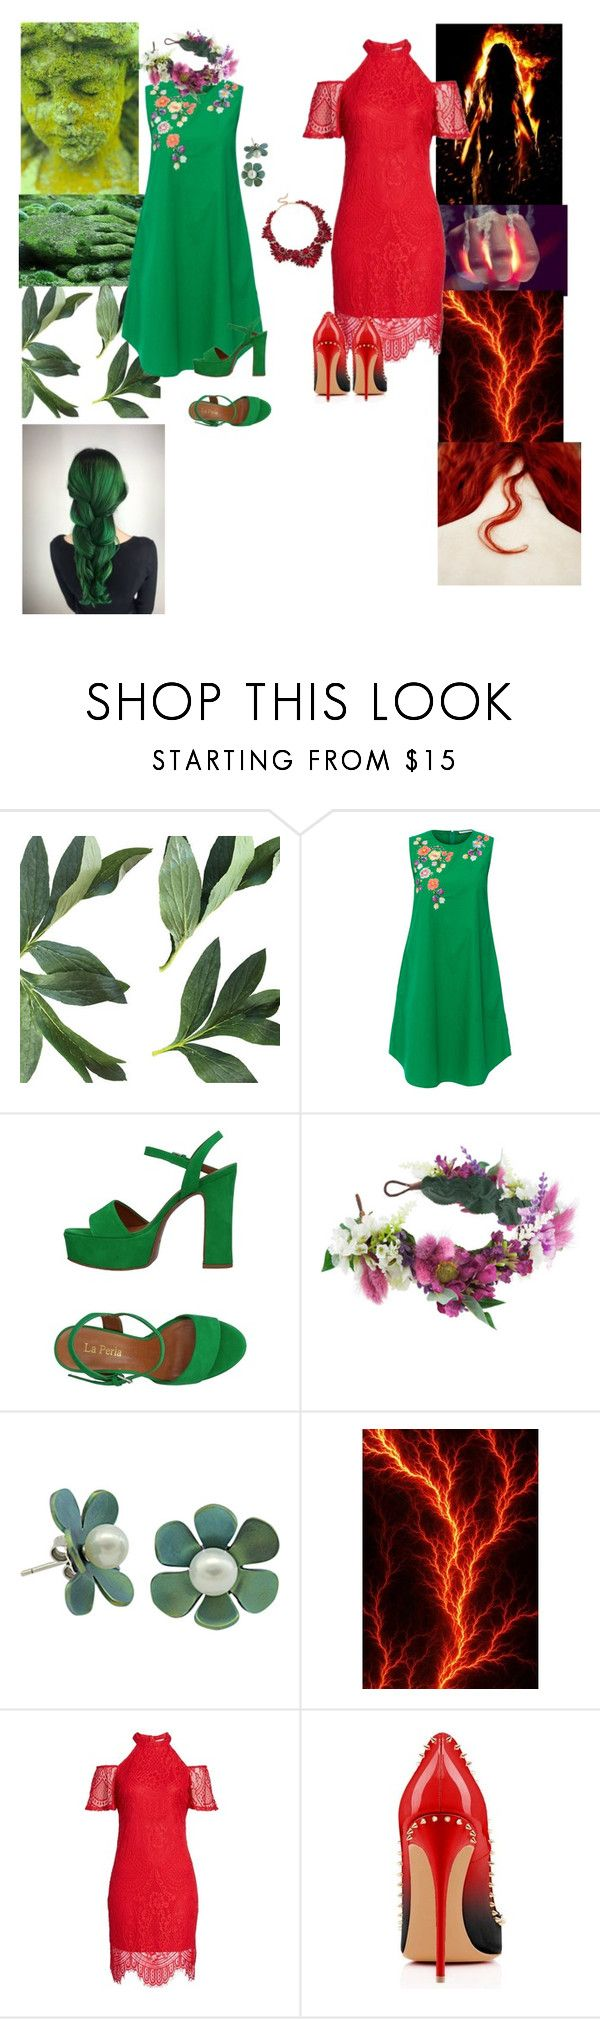 """Untitled #20"" by leunicorn ❤ liked on Polyvore featuring Megan Park, La Perla, Rock 'N Rose, love, FiRE and Sole Society"